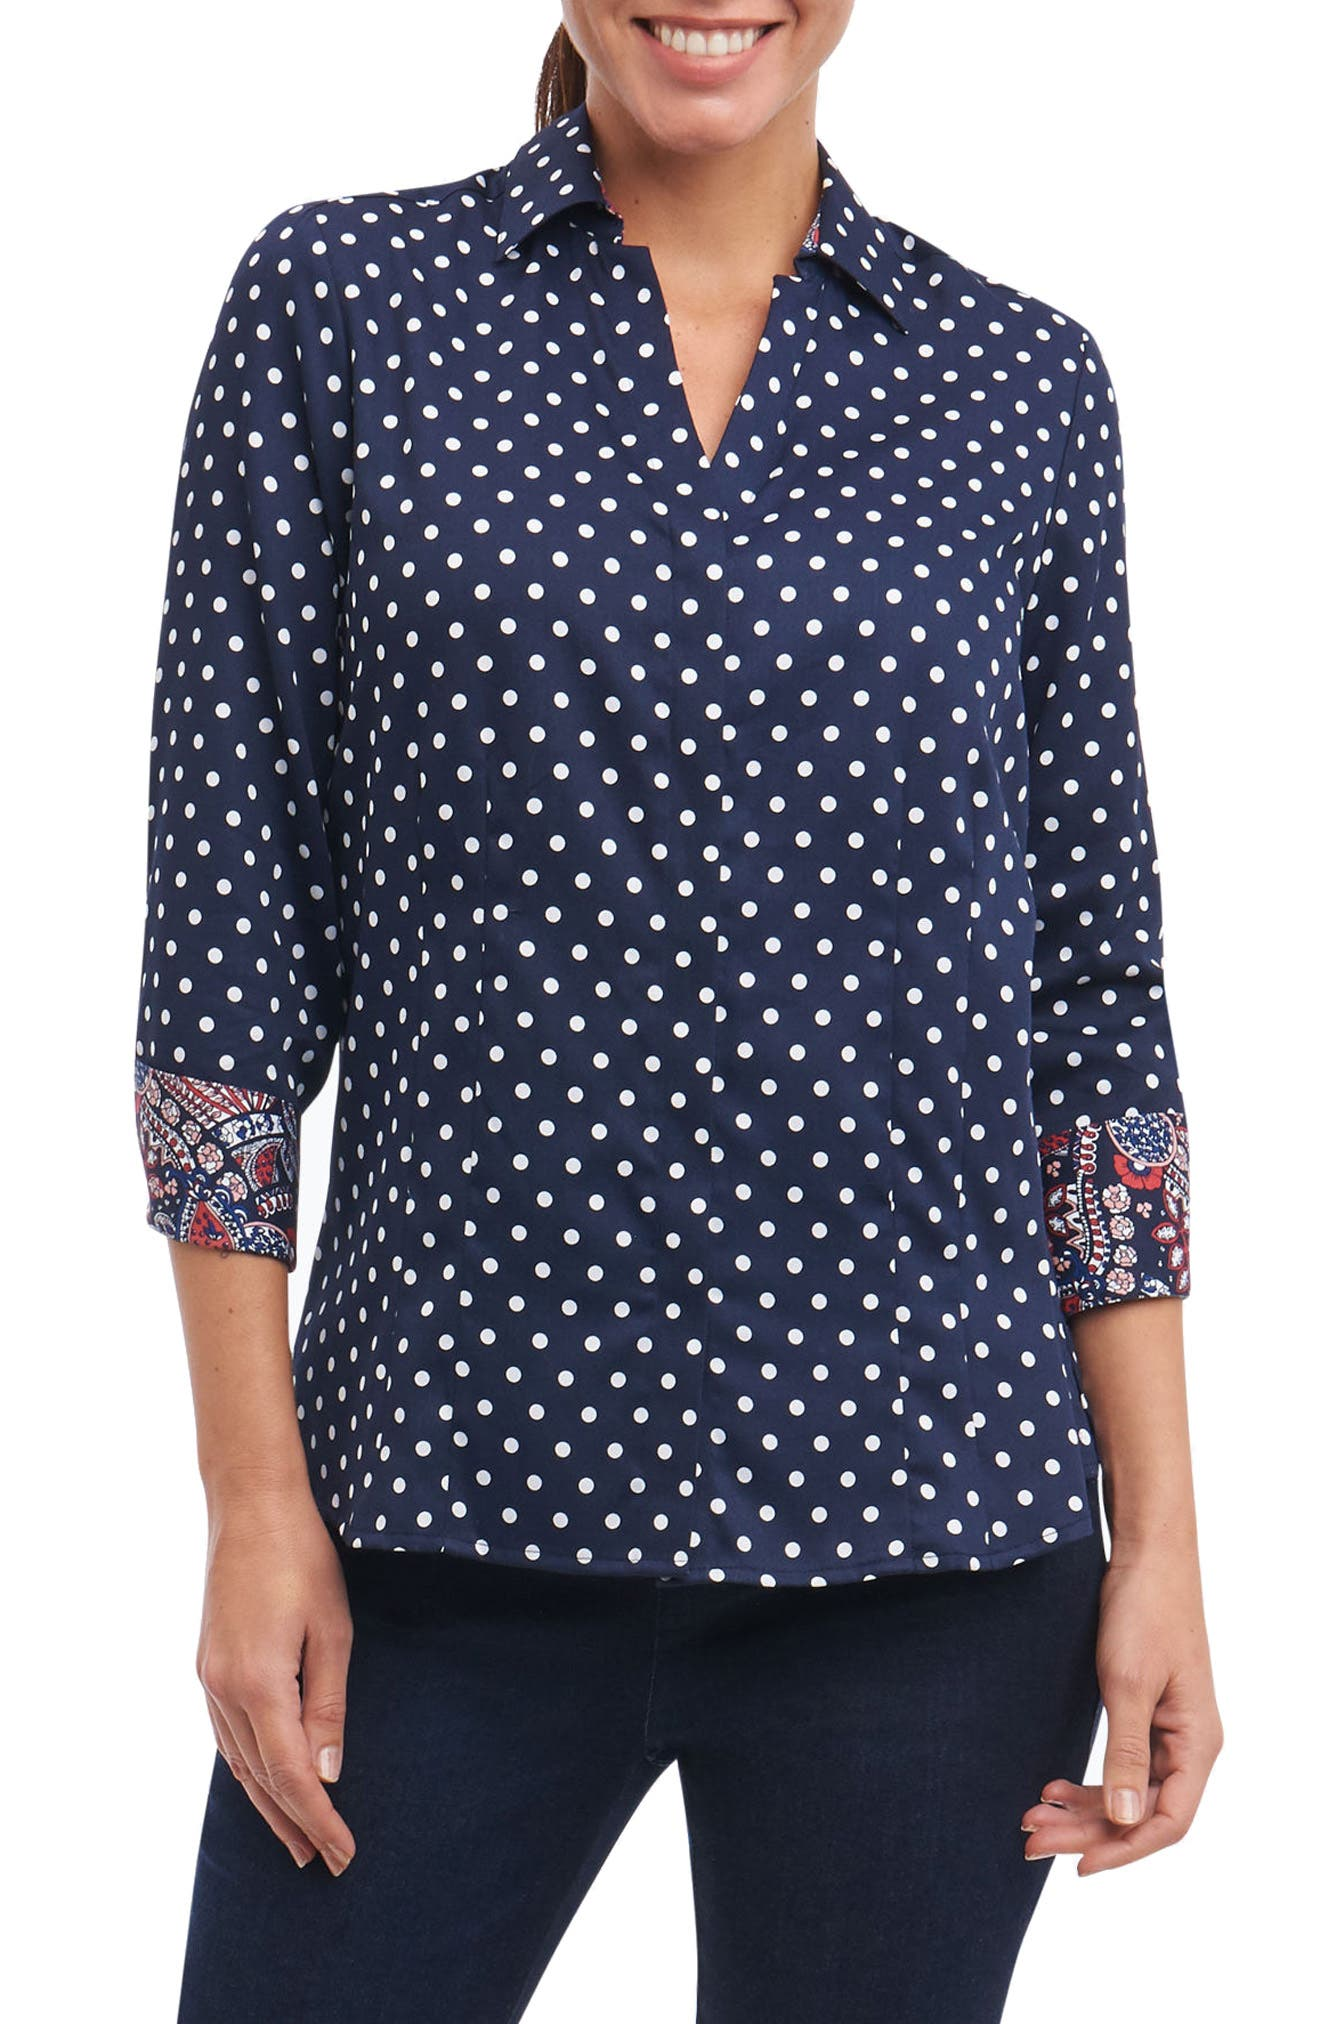 Taylor Classic Dot Non-Iron Cotton Shirt,                         Main,                         color, Navy/ White